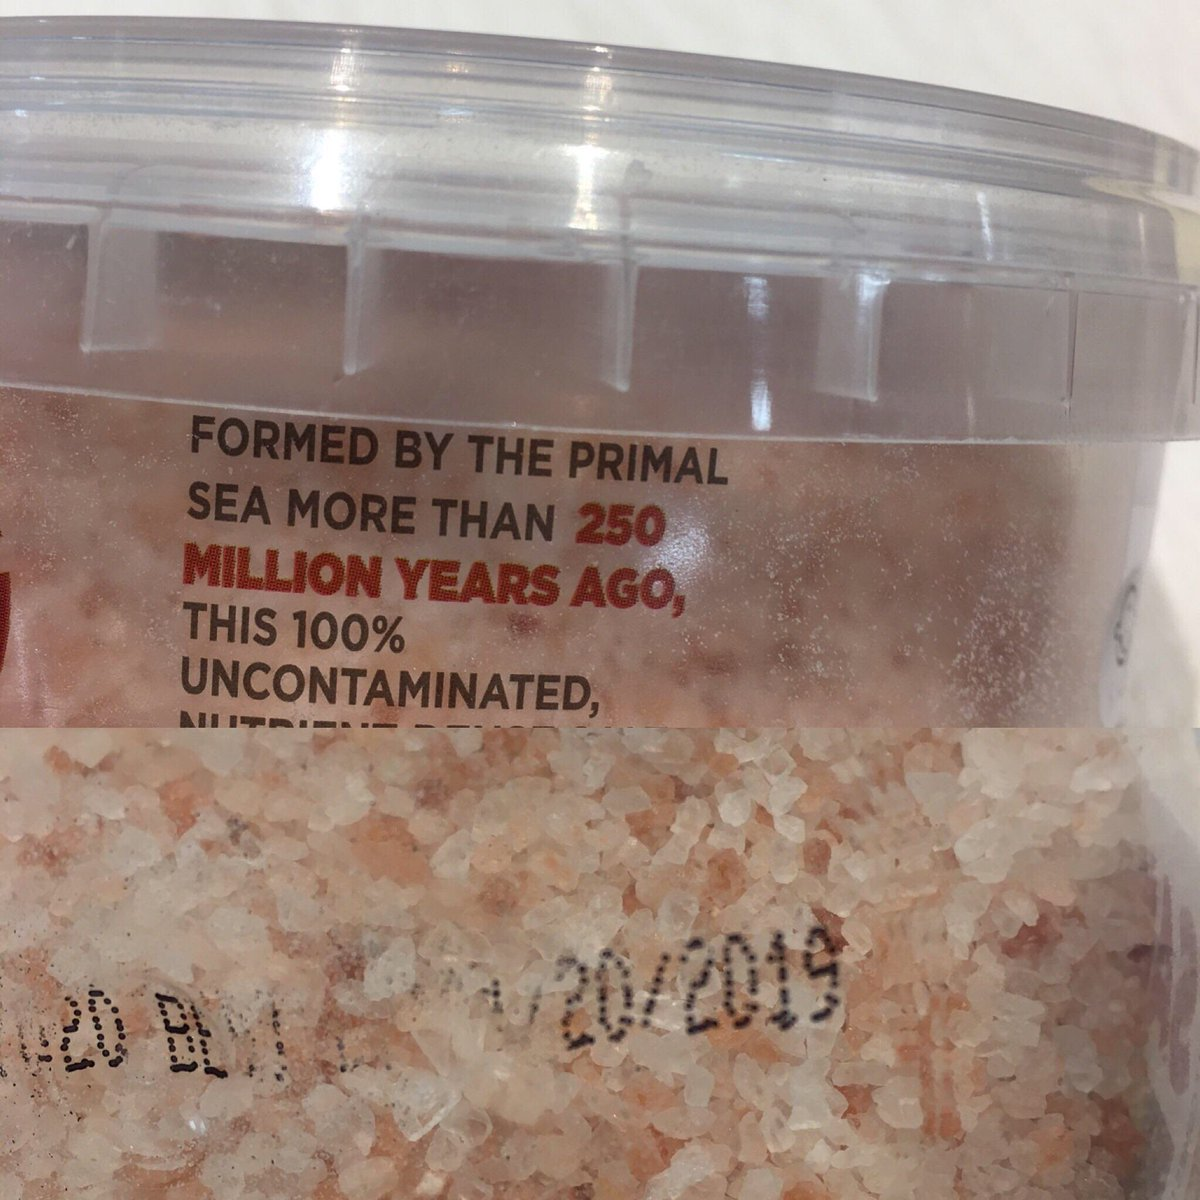 Do we really need a Best Before Date on 250 million year old salt? 😃